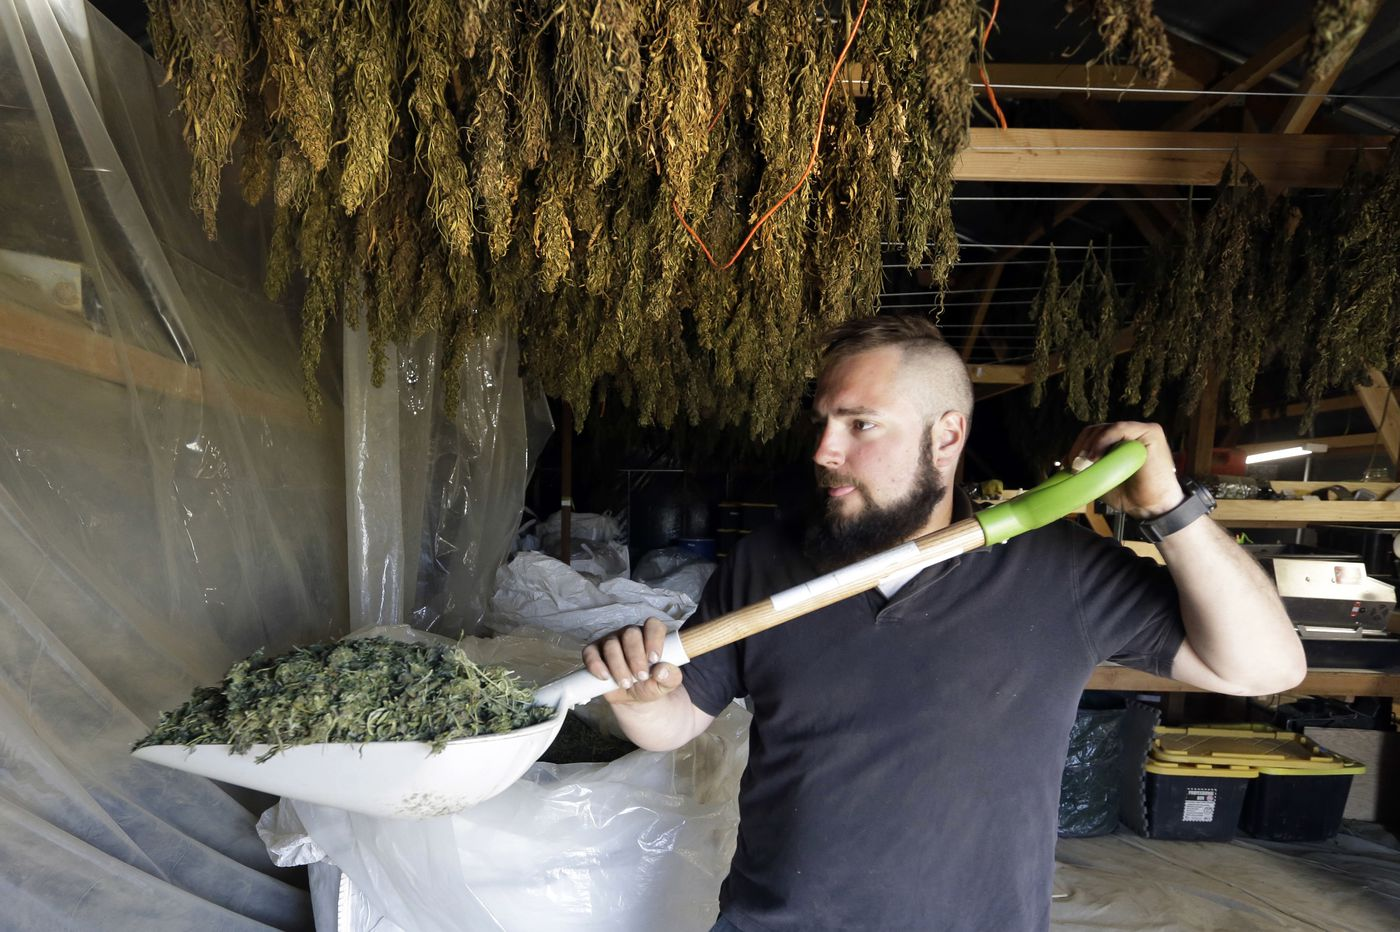 Delaware gets approval from USDA to grow hemp. Is that a good thing?